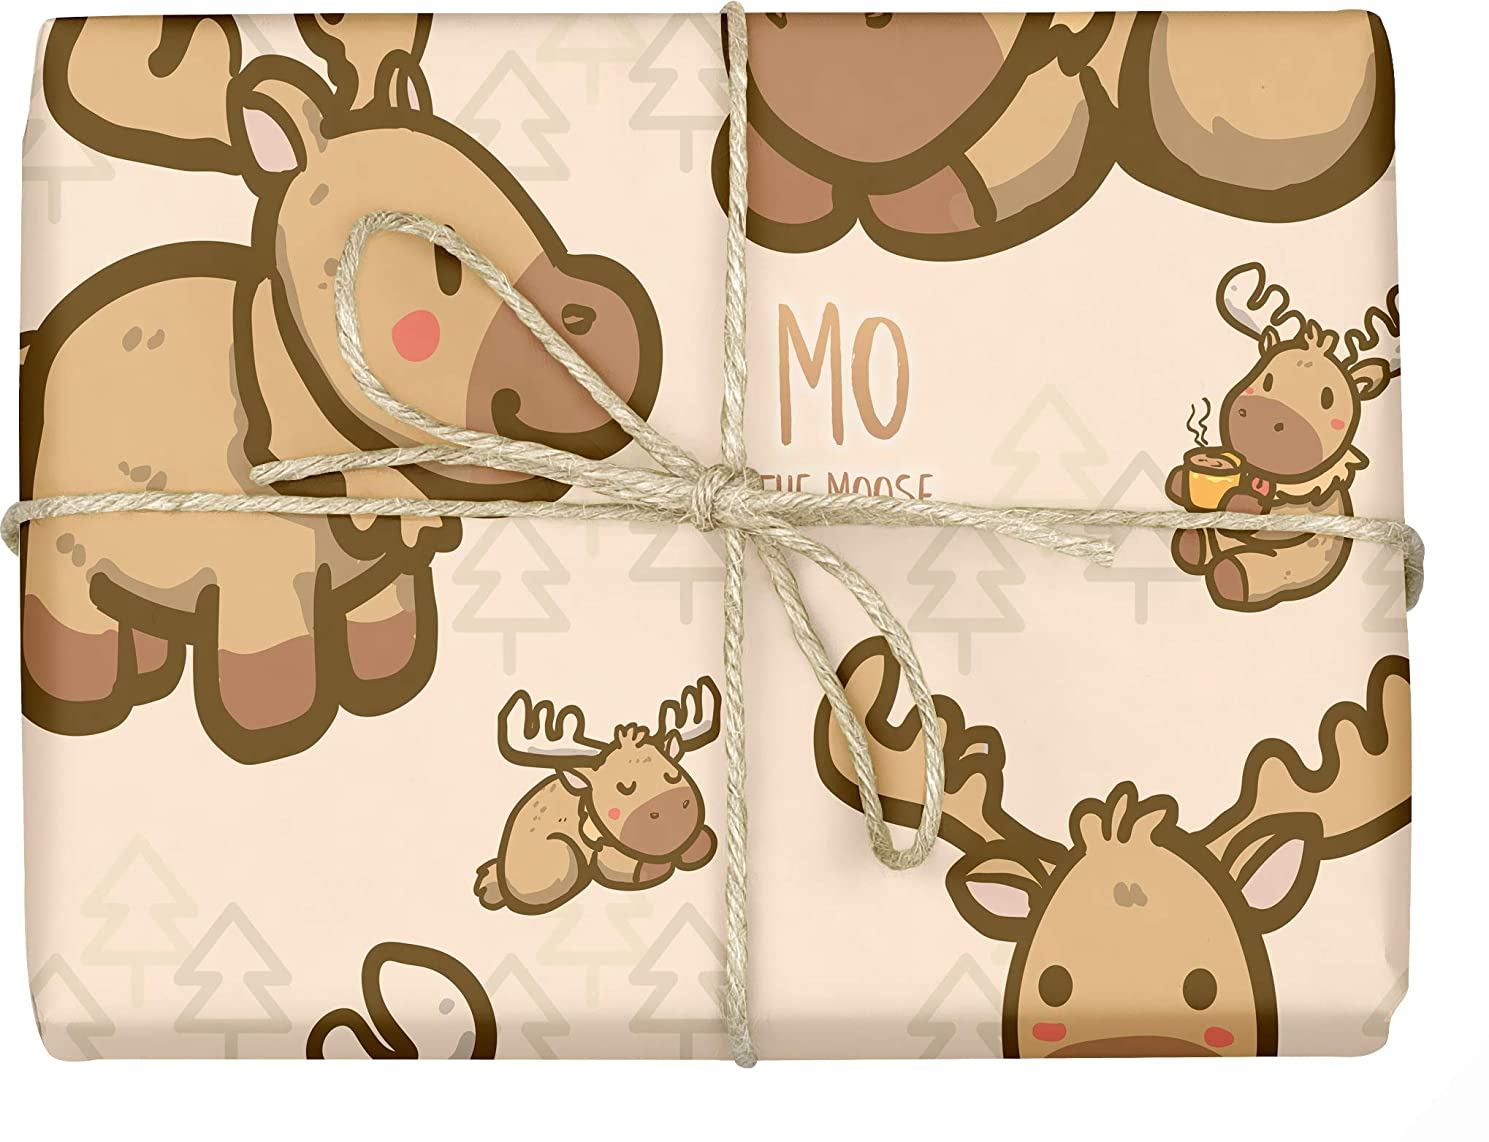 Mo The Moose - Design Gift Wrapping Paper | for Baby Showers, Kids Birthdays, Christmas Gifts | Unique Unisex Print | Wrap A Birthday Parcel & Present | 5 Sheets | 20 x 28 Inches